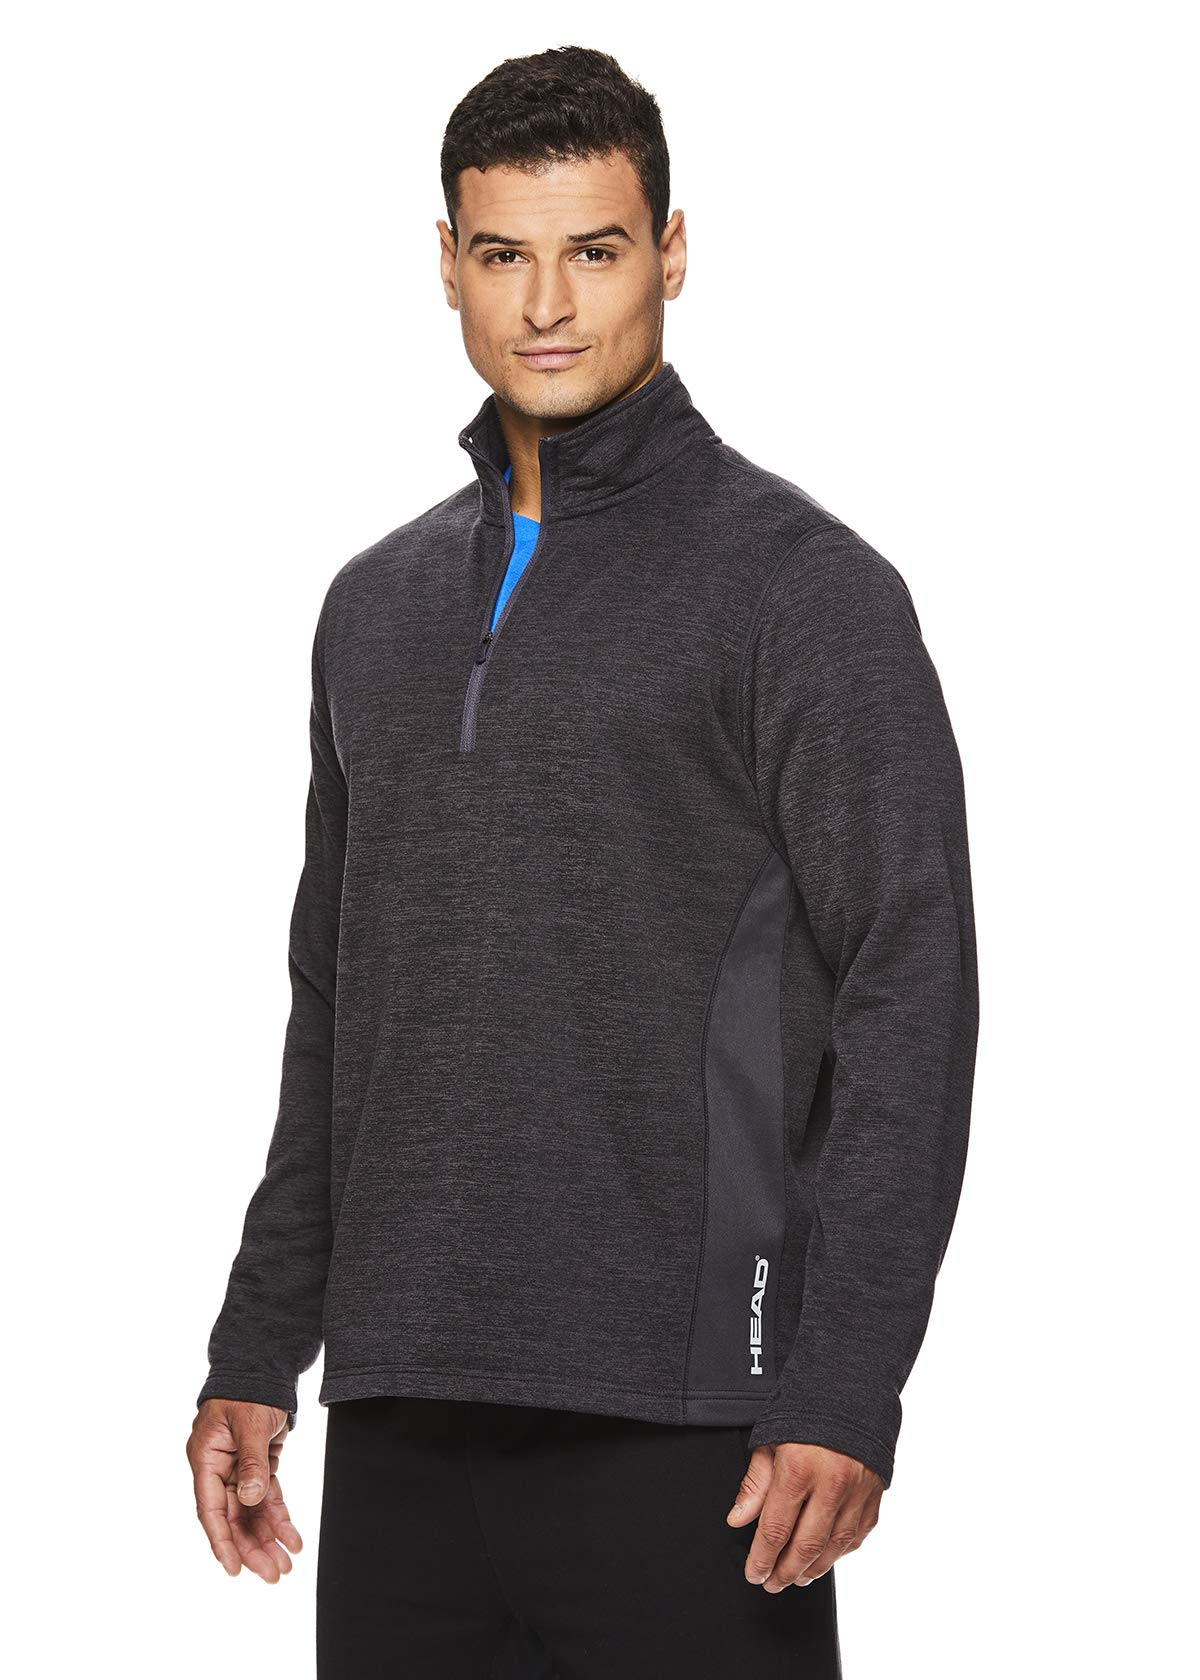 HEAD Men's 1/4 Zip Up Activewear Pullover Jacket - Long Sleeve Running & Workout Sweater - Warm Up Nine Iron Heather, Small